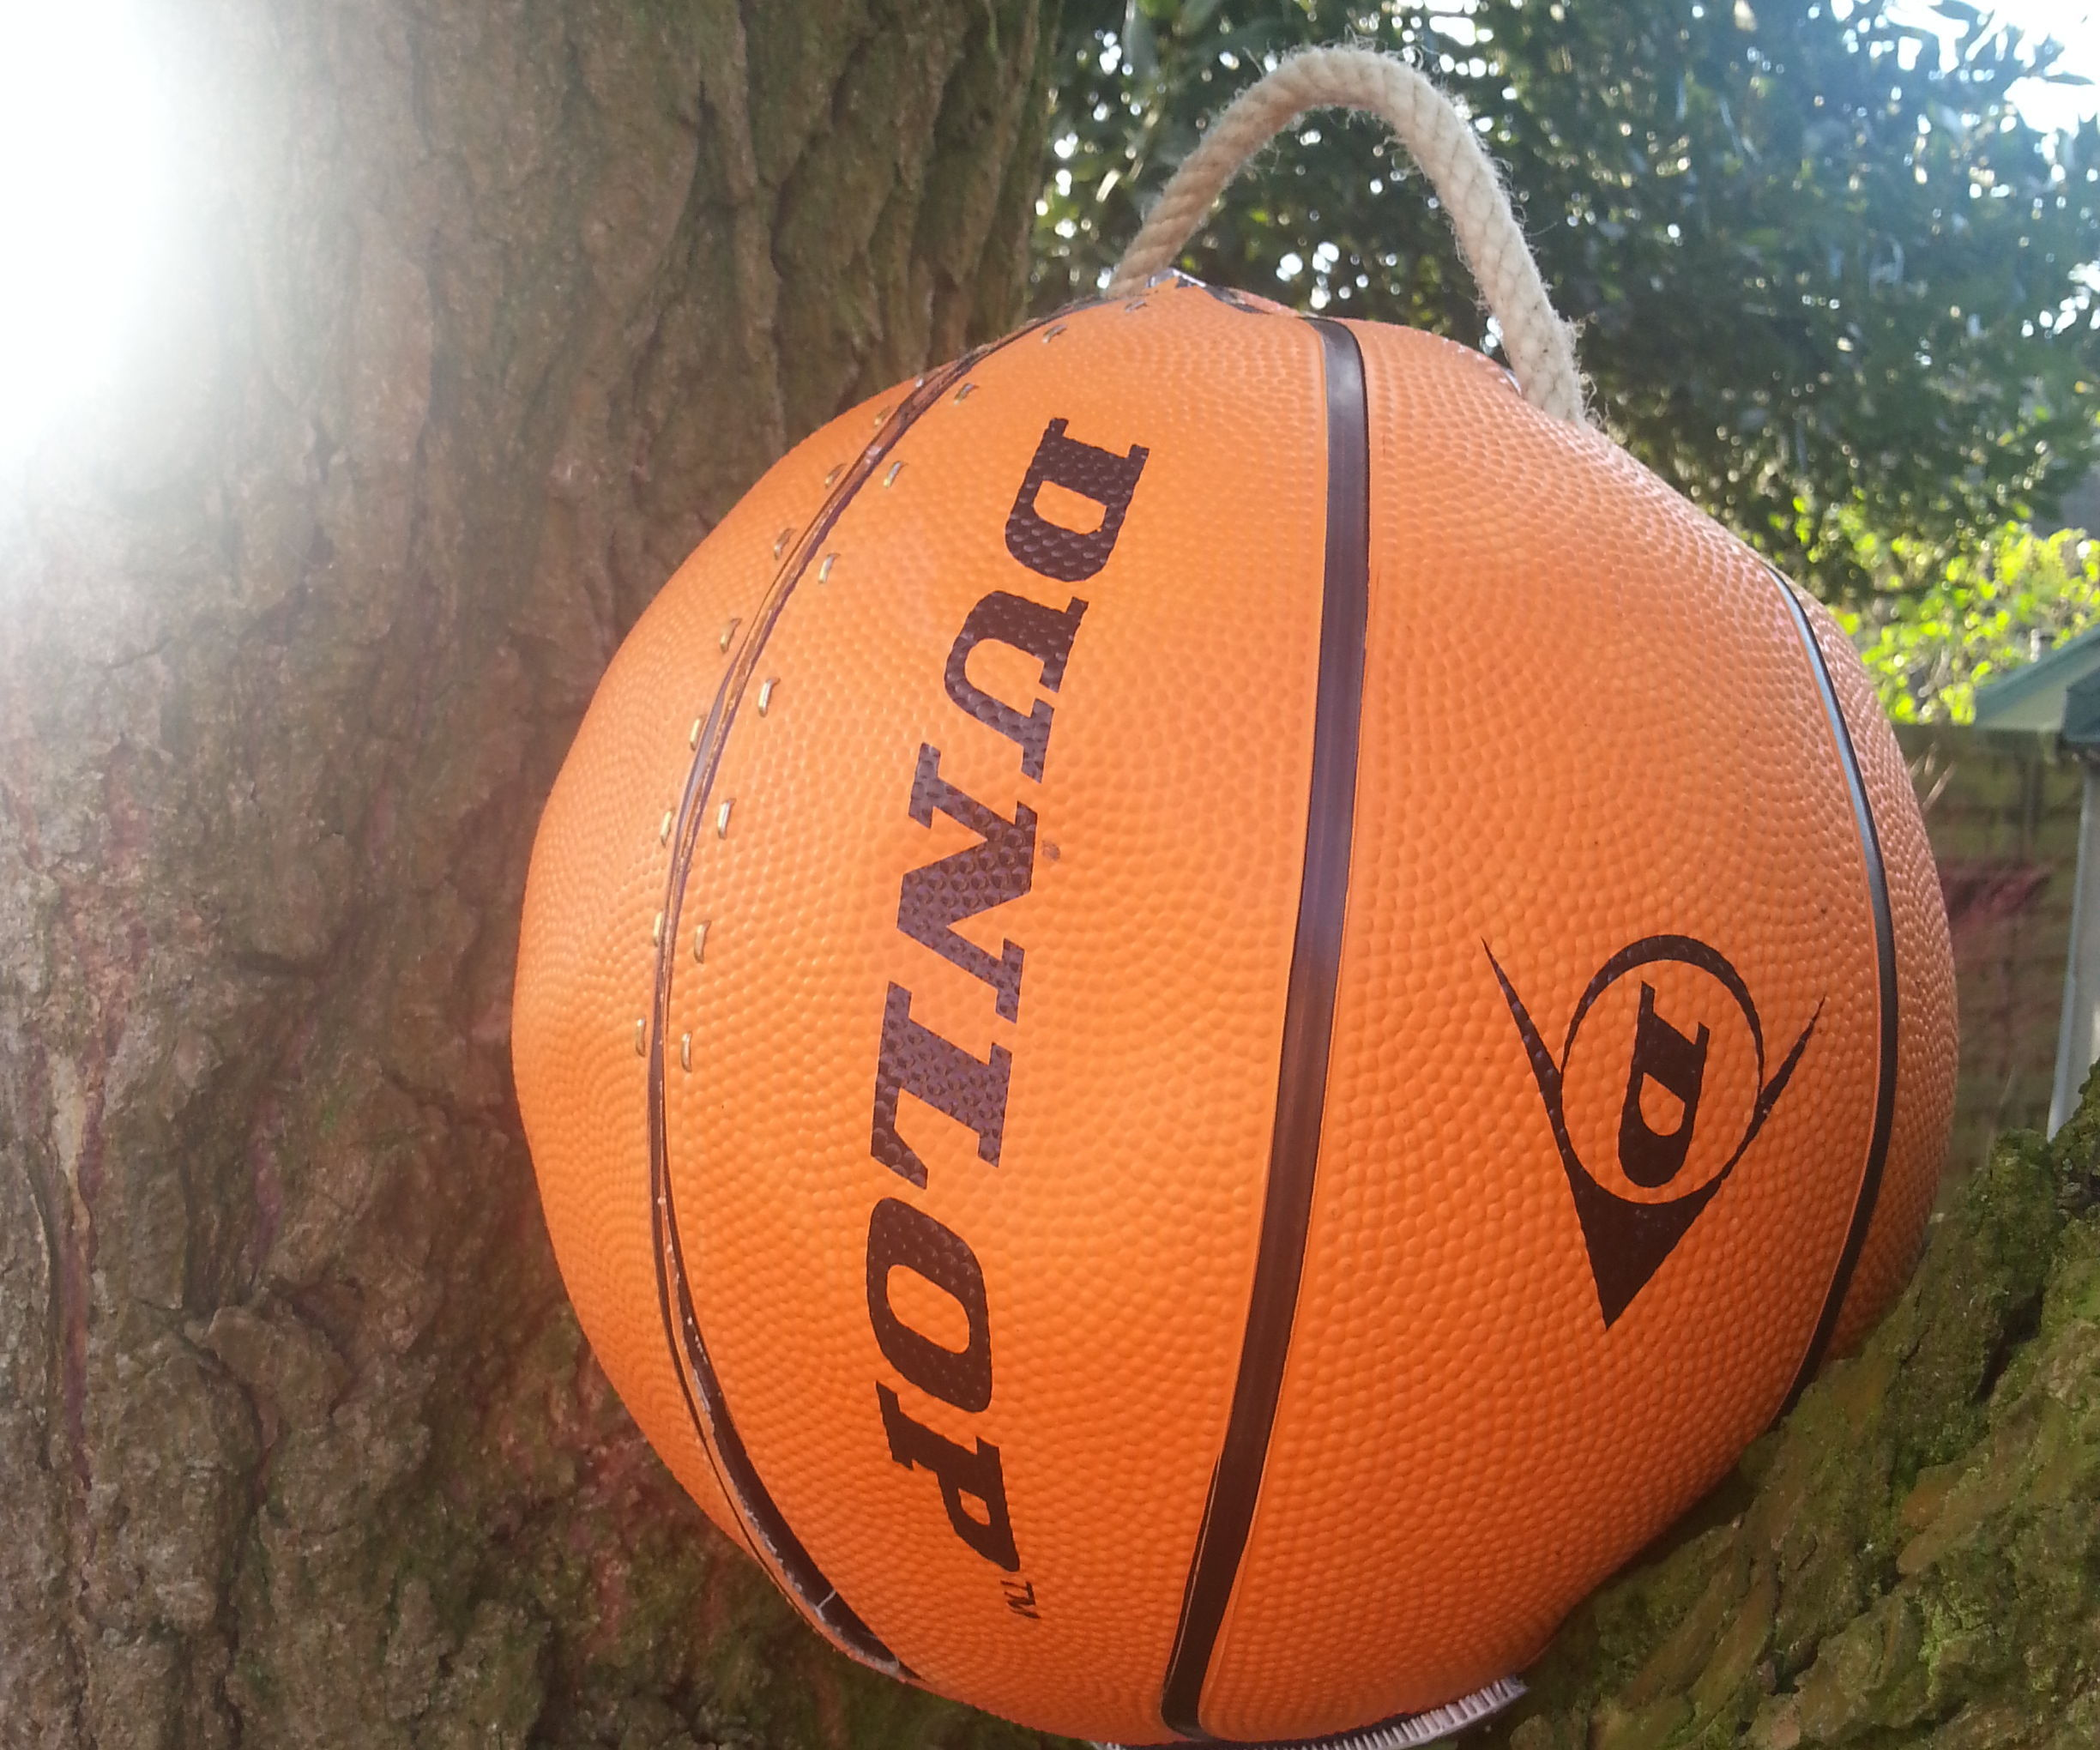 Portable swing in a ball